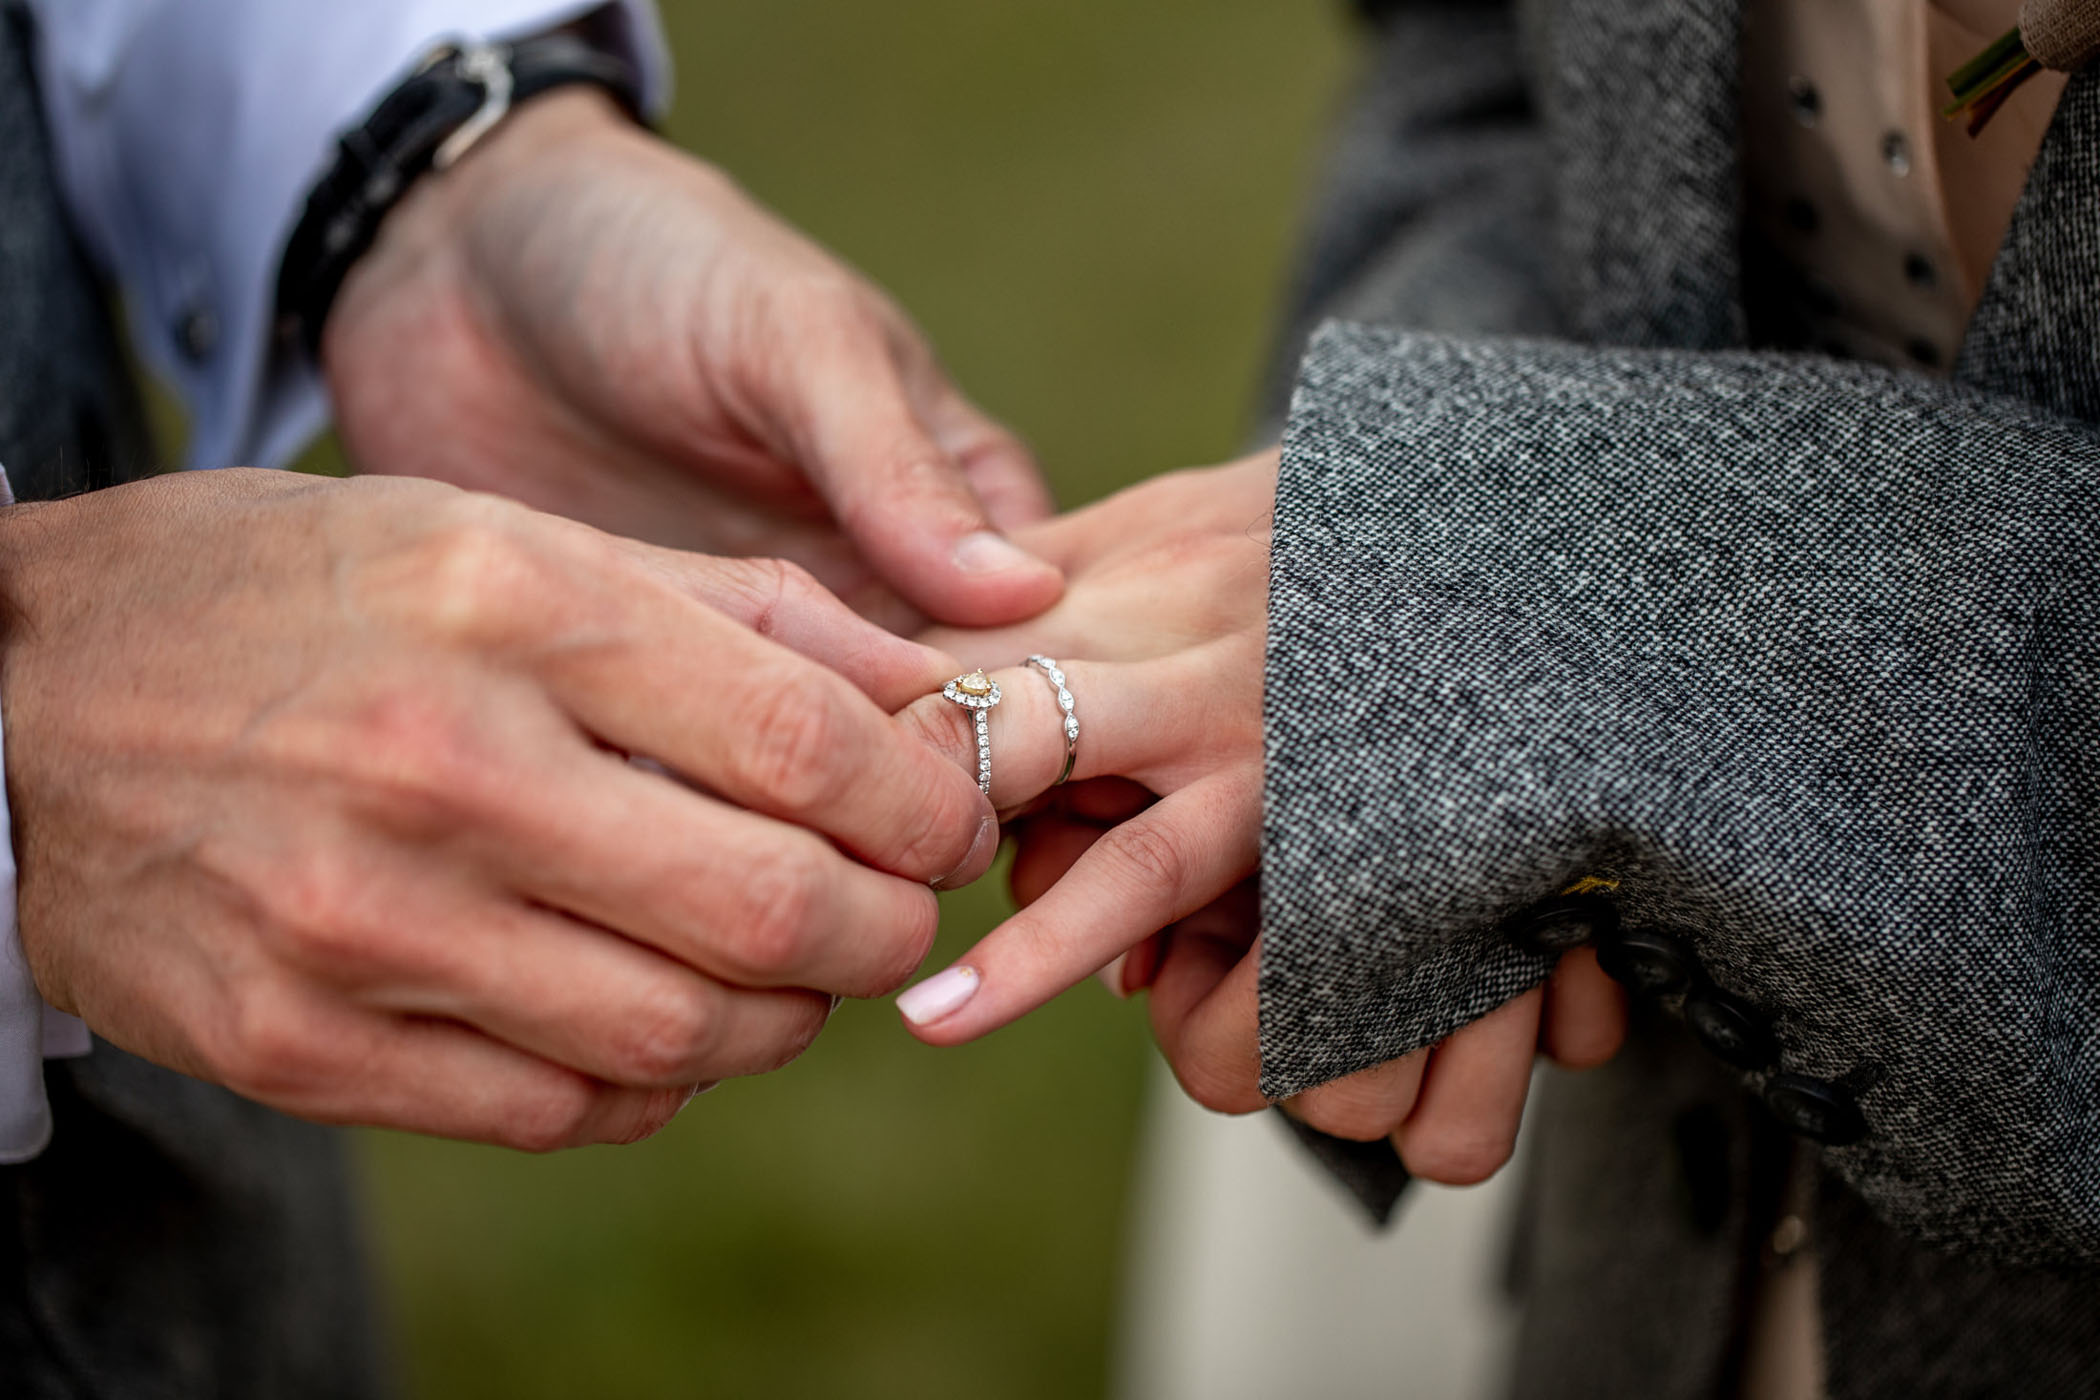 Groom places a pear wedding ring on his wife's finger